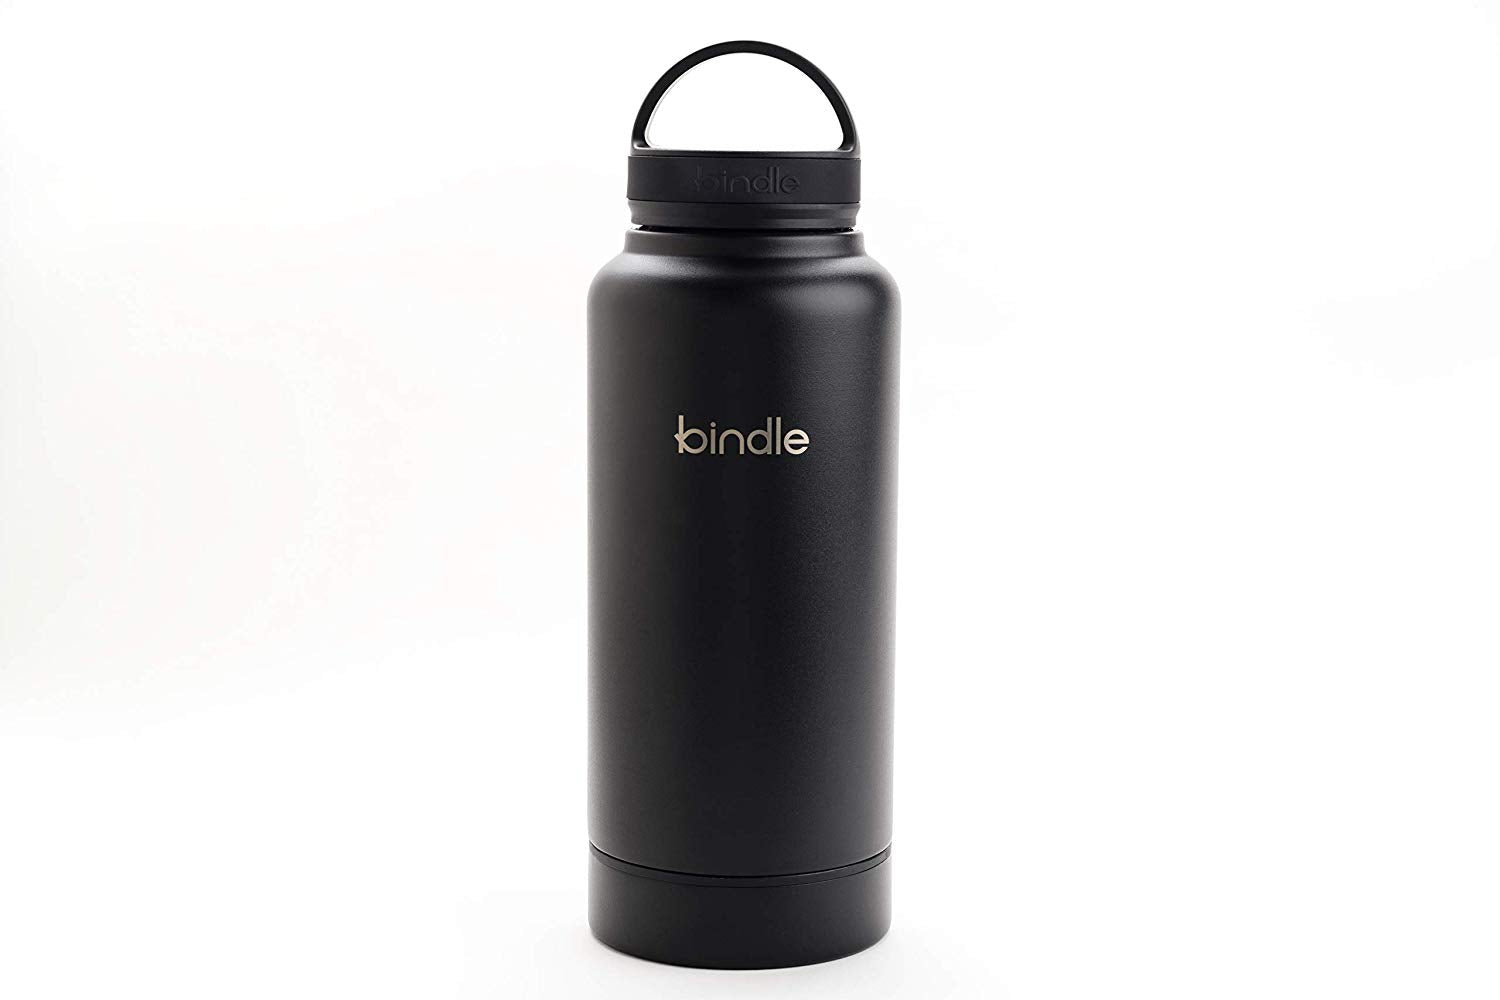 Bindle Bottle 24oz Stainless Steel Vacuum Insulated Water Bottle